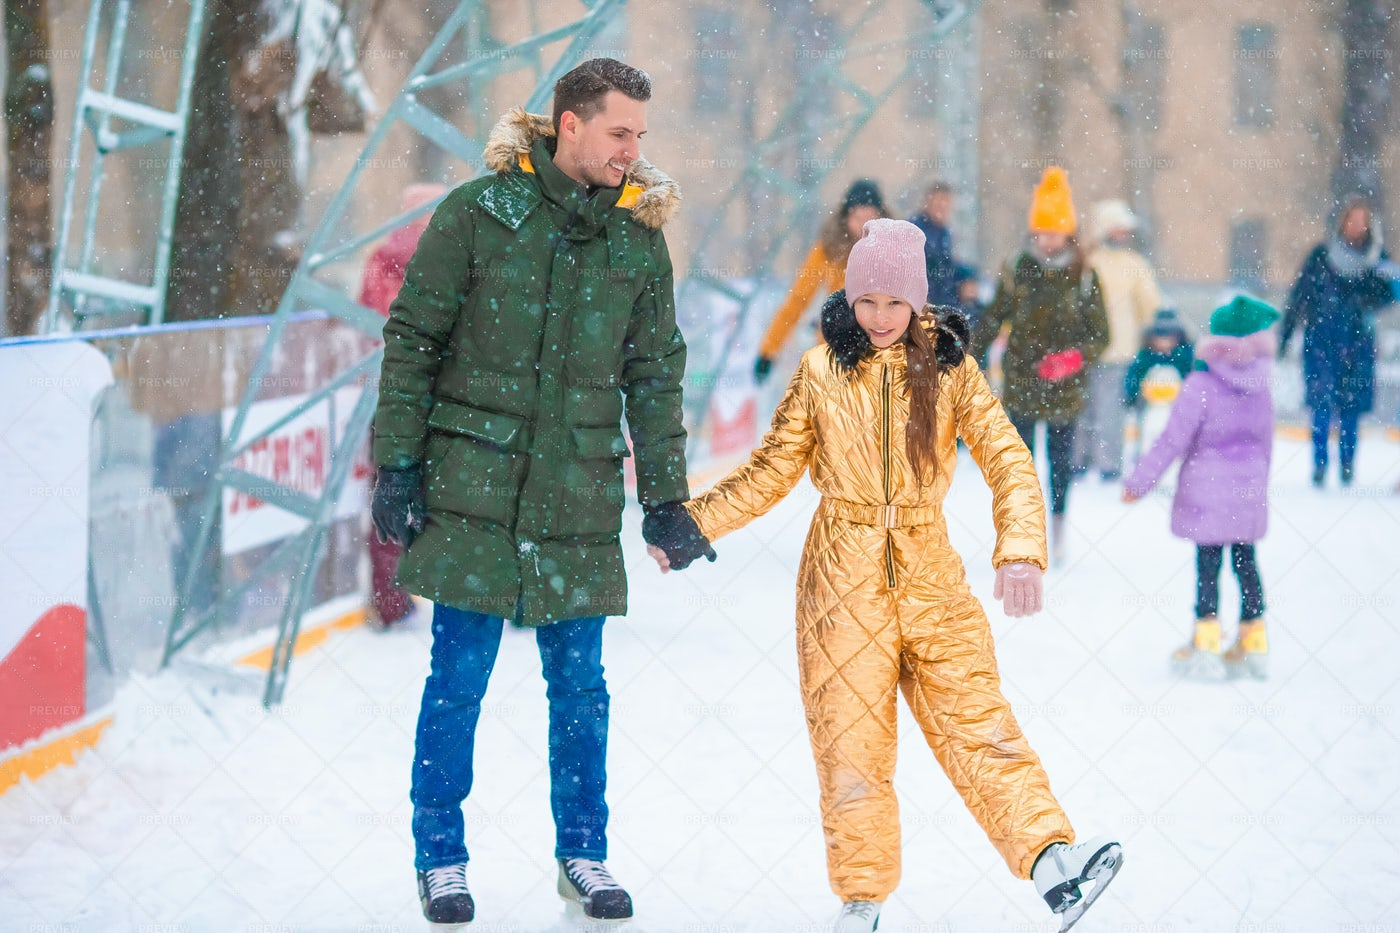 Dad And Daughter Ice Skating: Stock Photos